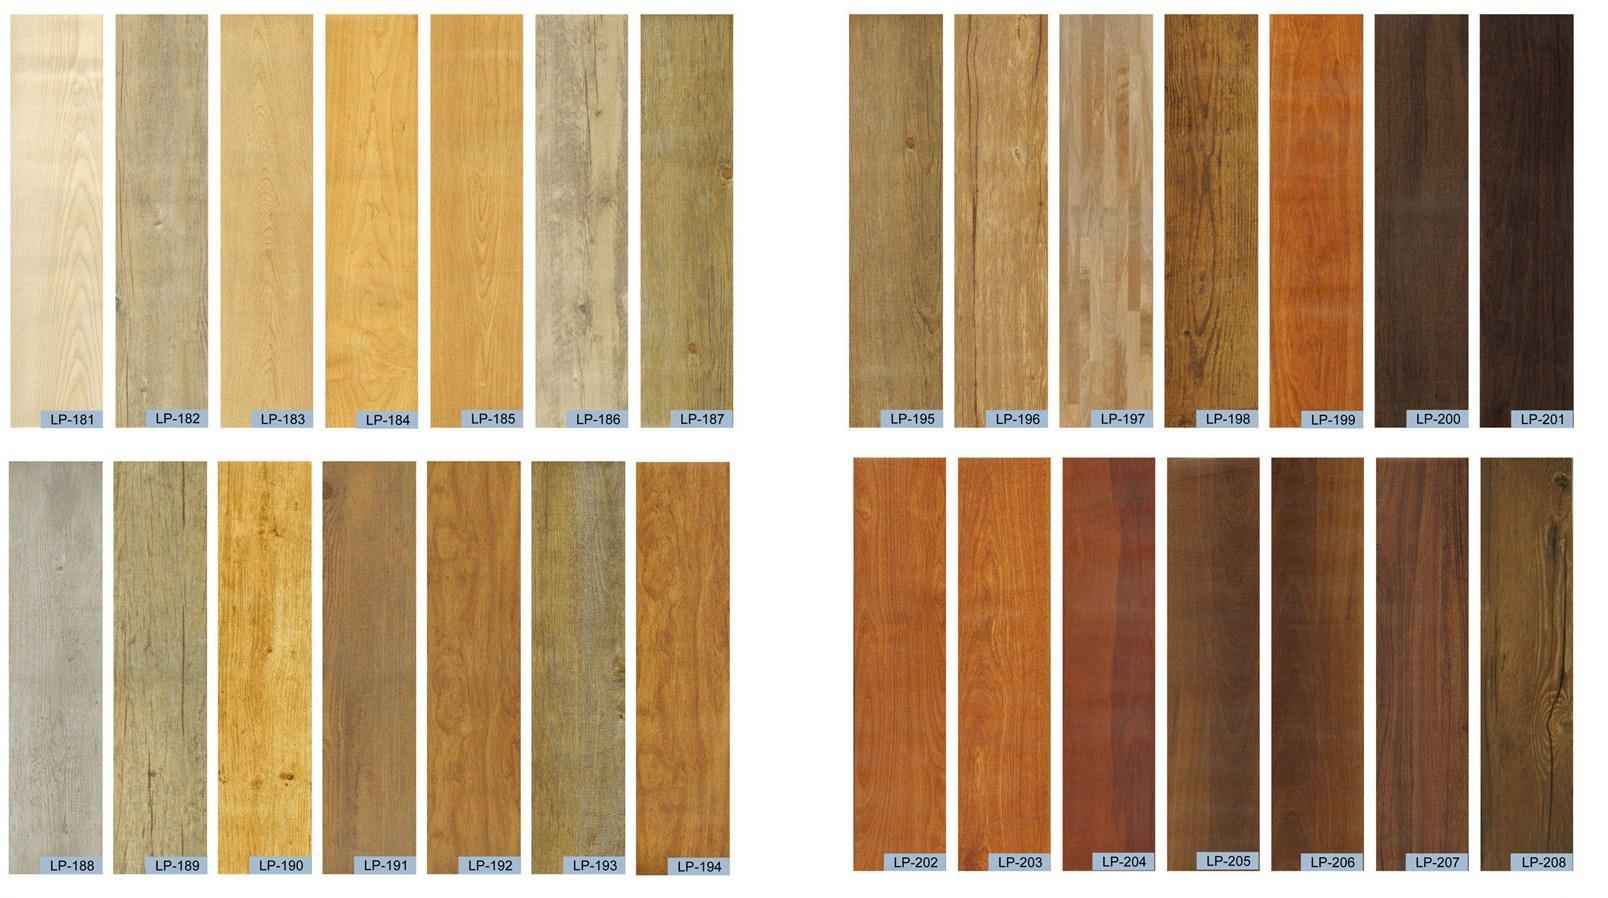 Floor mats price in chennai - Awesome Pvc Floor Wooden Pvc Floor Tile Printed Pvc Floor Covering Pvc